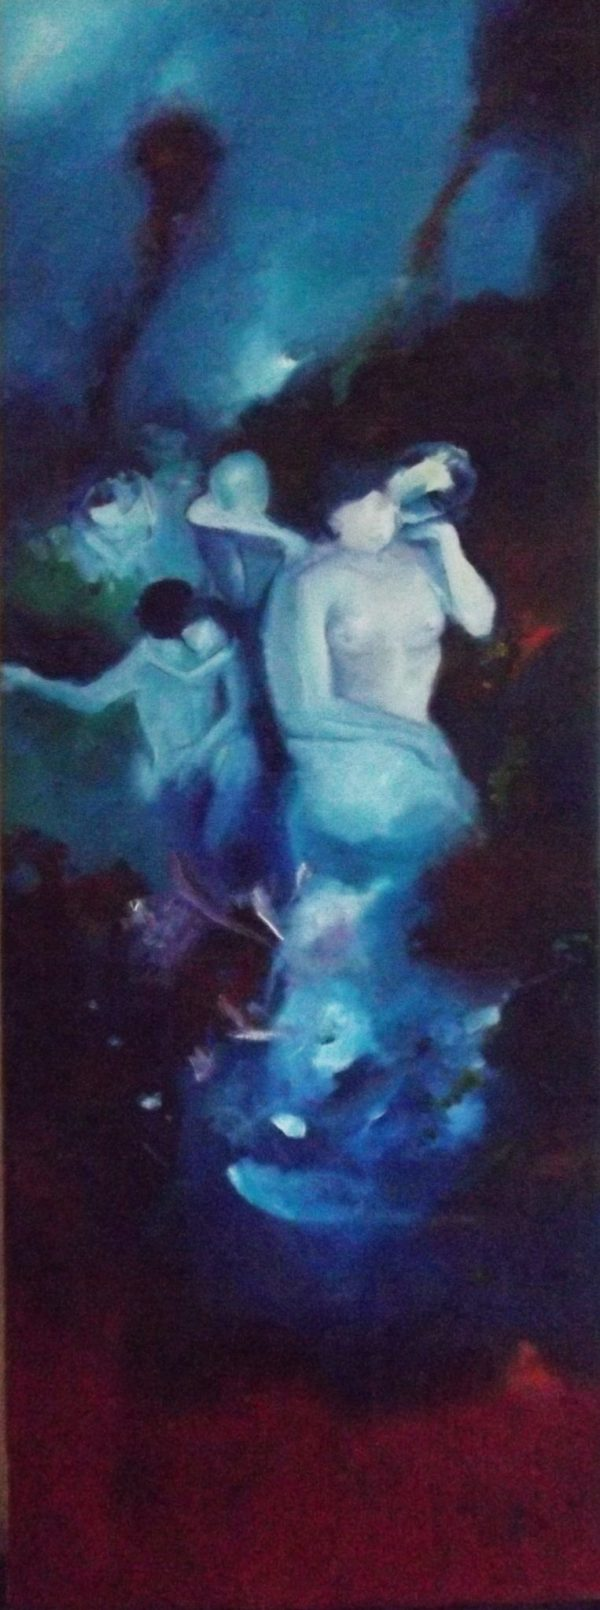 Elaborated by artist Gabí. Various Hugs is about bodies in motion. Immersed in shades of blue, moving in different directions.